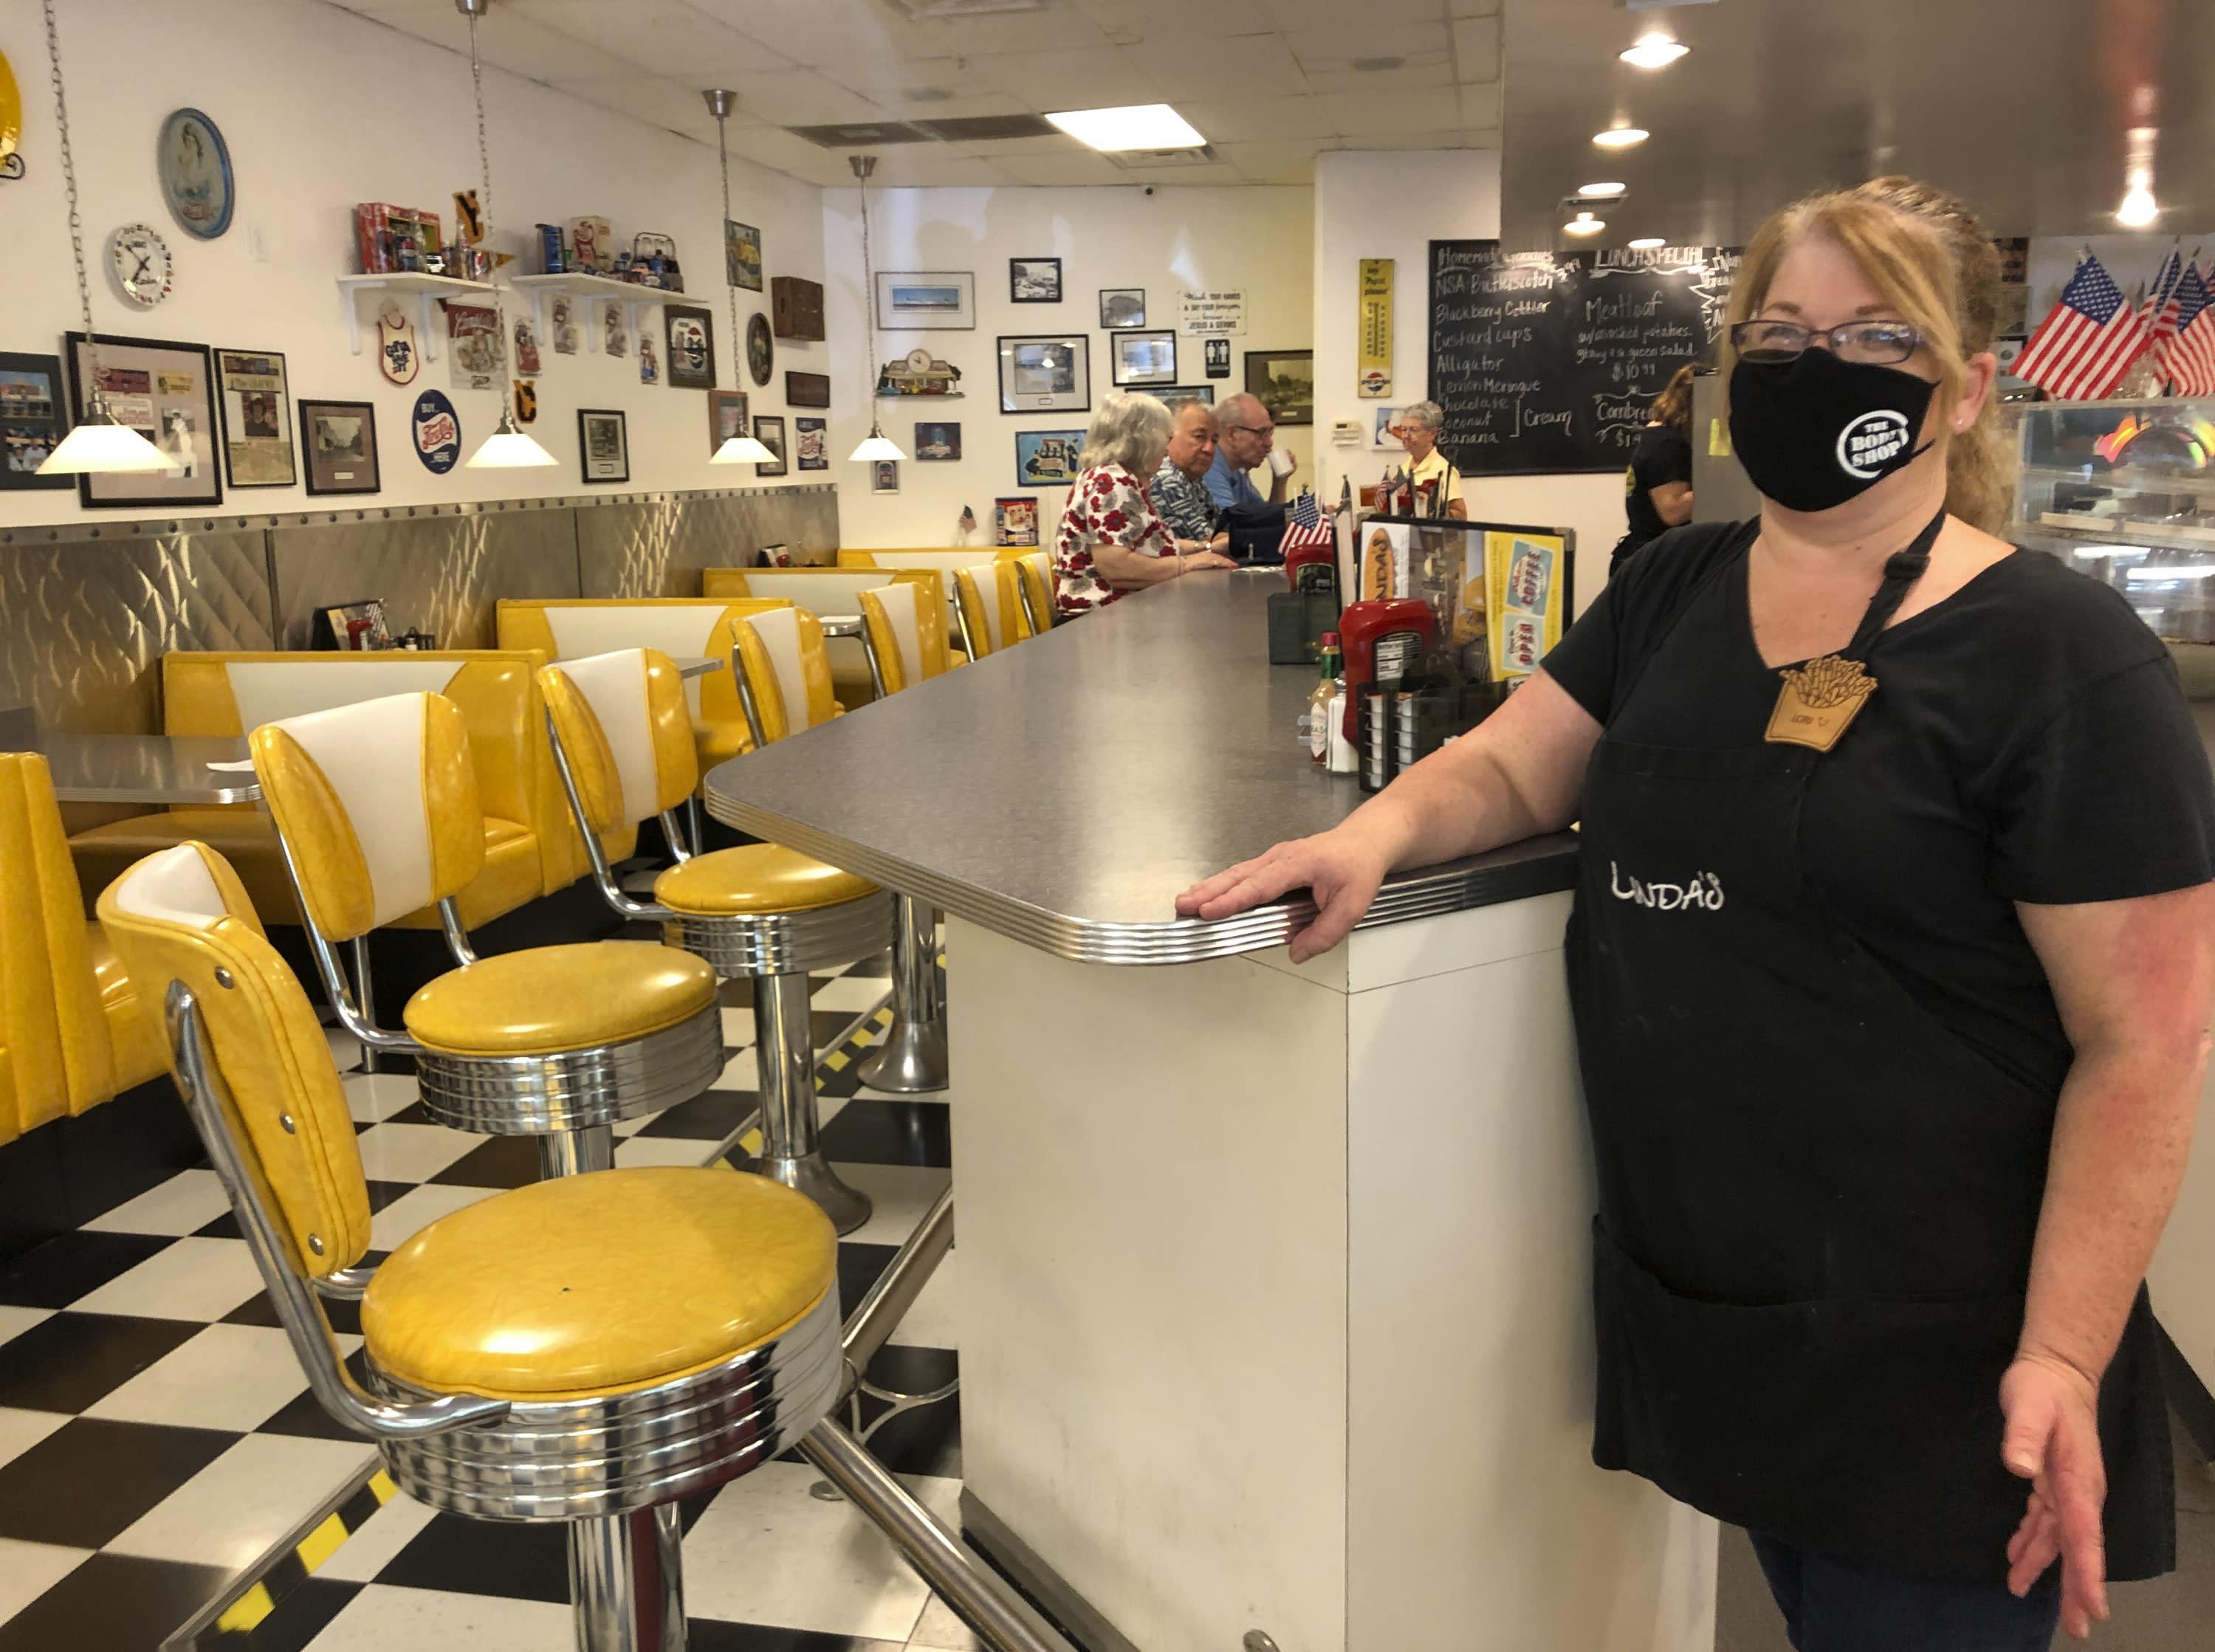 """Restaurant manager Lori Pack stands at the counter of Linda's Soda Bar and Grill in Yuba City, Calif., Thursday, July 9, 2020. Sutter County was one of the first counties to reopen its economy when it defied Gov. Gavin Newsom's stay-at-home order in May to allow restaurants, hair salons, gyms and shopping malls to reopen. But Thursday, the county was added to a state watch list because of its rising number of coronavirus cases and hospitalizations. That will eventually trigger another round of restrictions, forcing bars to close and indoor operations to cease at restaurants and other public places for three weeks. Pack says the restaurant tried takeout-only service for three weeks earlier this year during the coronavirus pandemic. But she said it was """"just not sustainable."""" (AP Photo/Adam Beam)"""